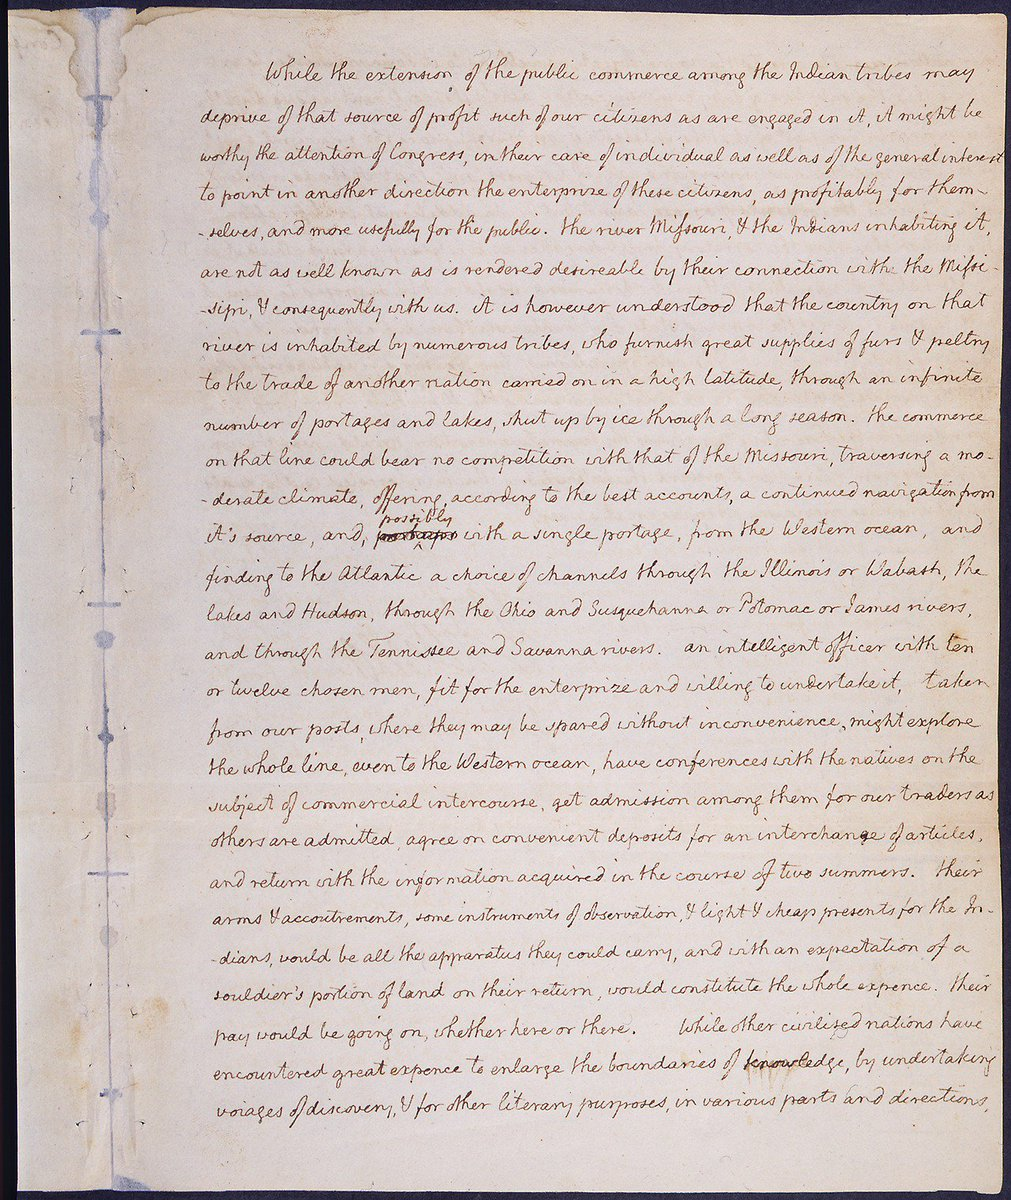 thomas jeffersonís second inaugural address essay Thomas jefferson's republican versus the federalist's political but full essay samples are available only for thomas jefferson's second inaugural address.